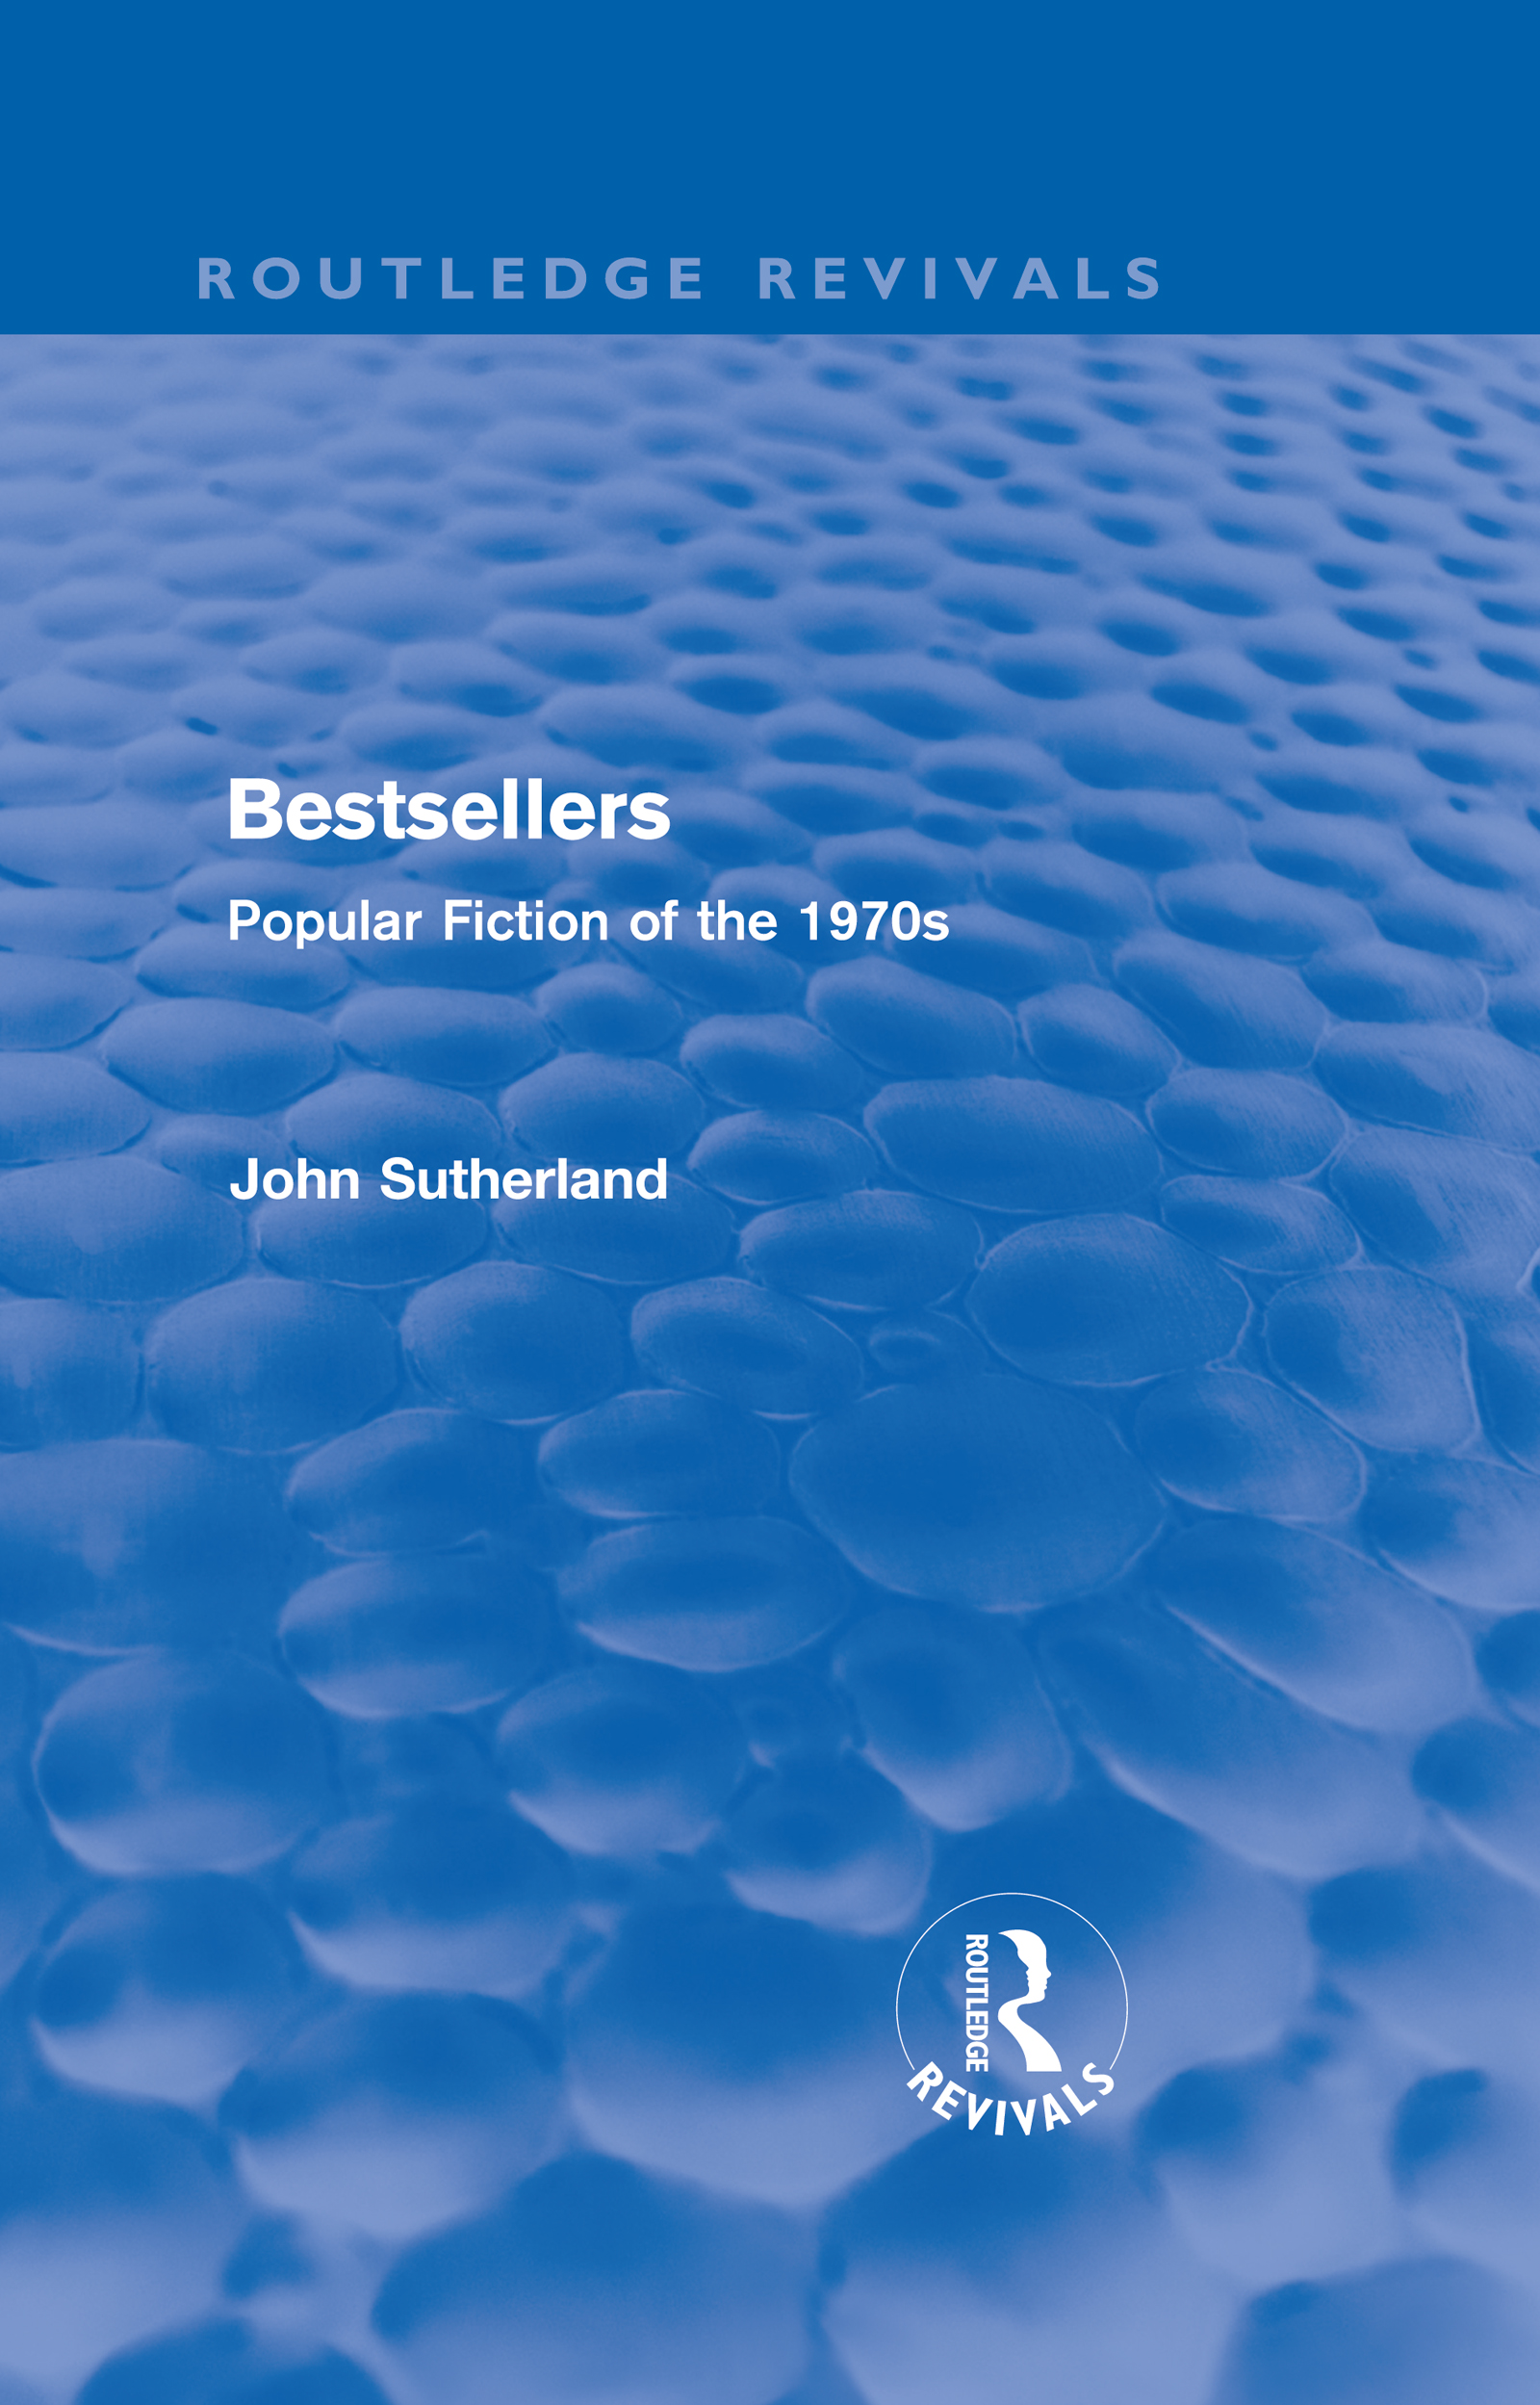 Bestsellers (Routledge Revivals): Popular Fiction of the 1970s (Hardback) book cover